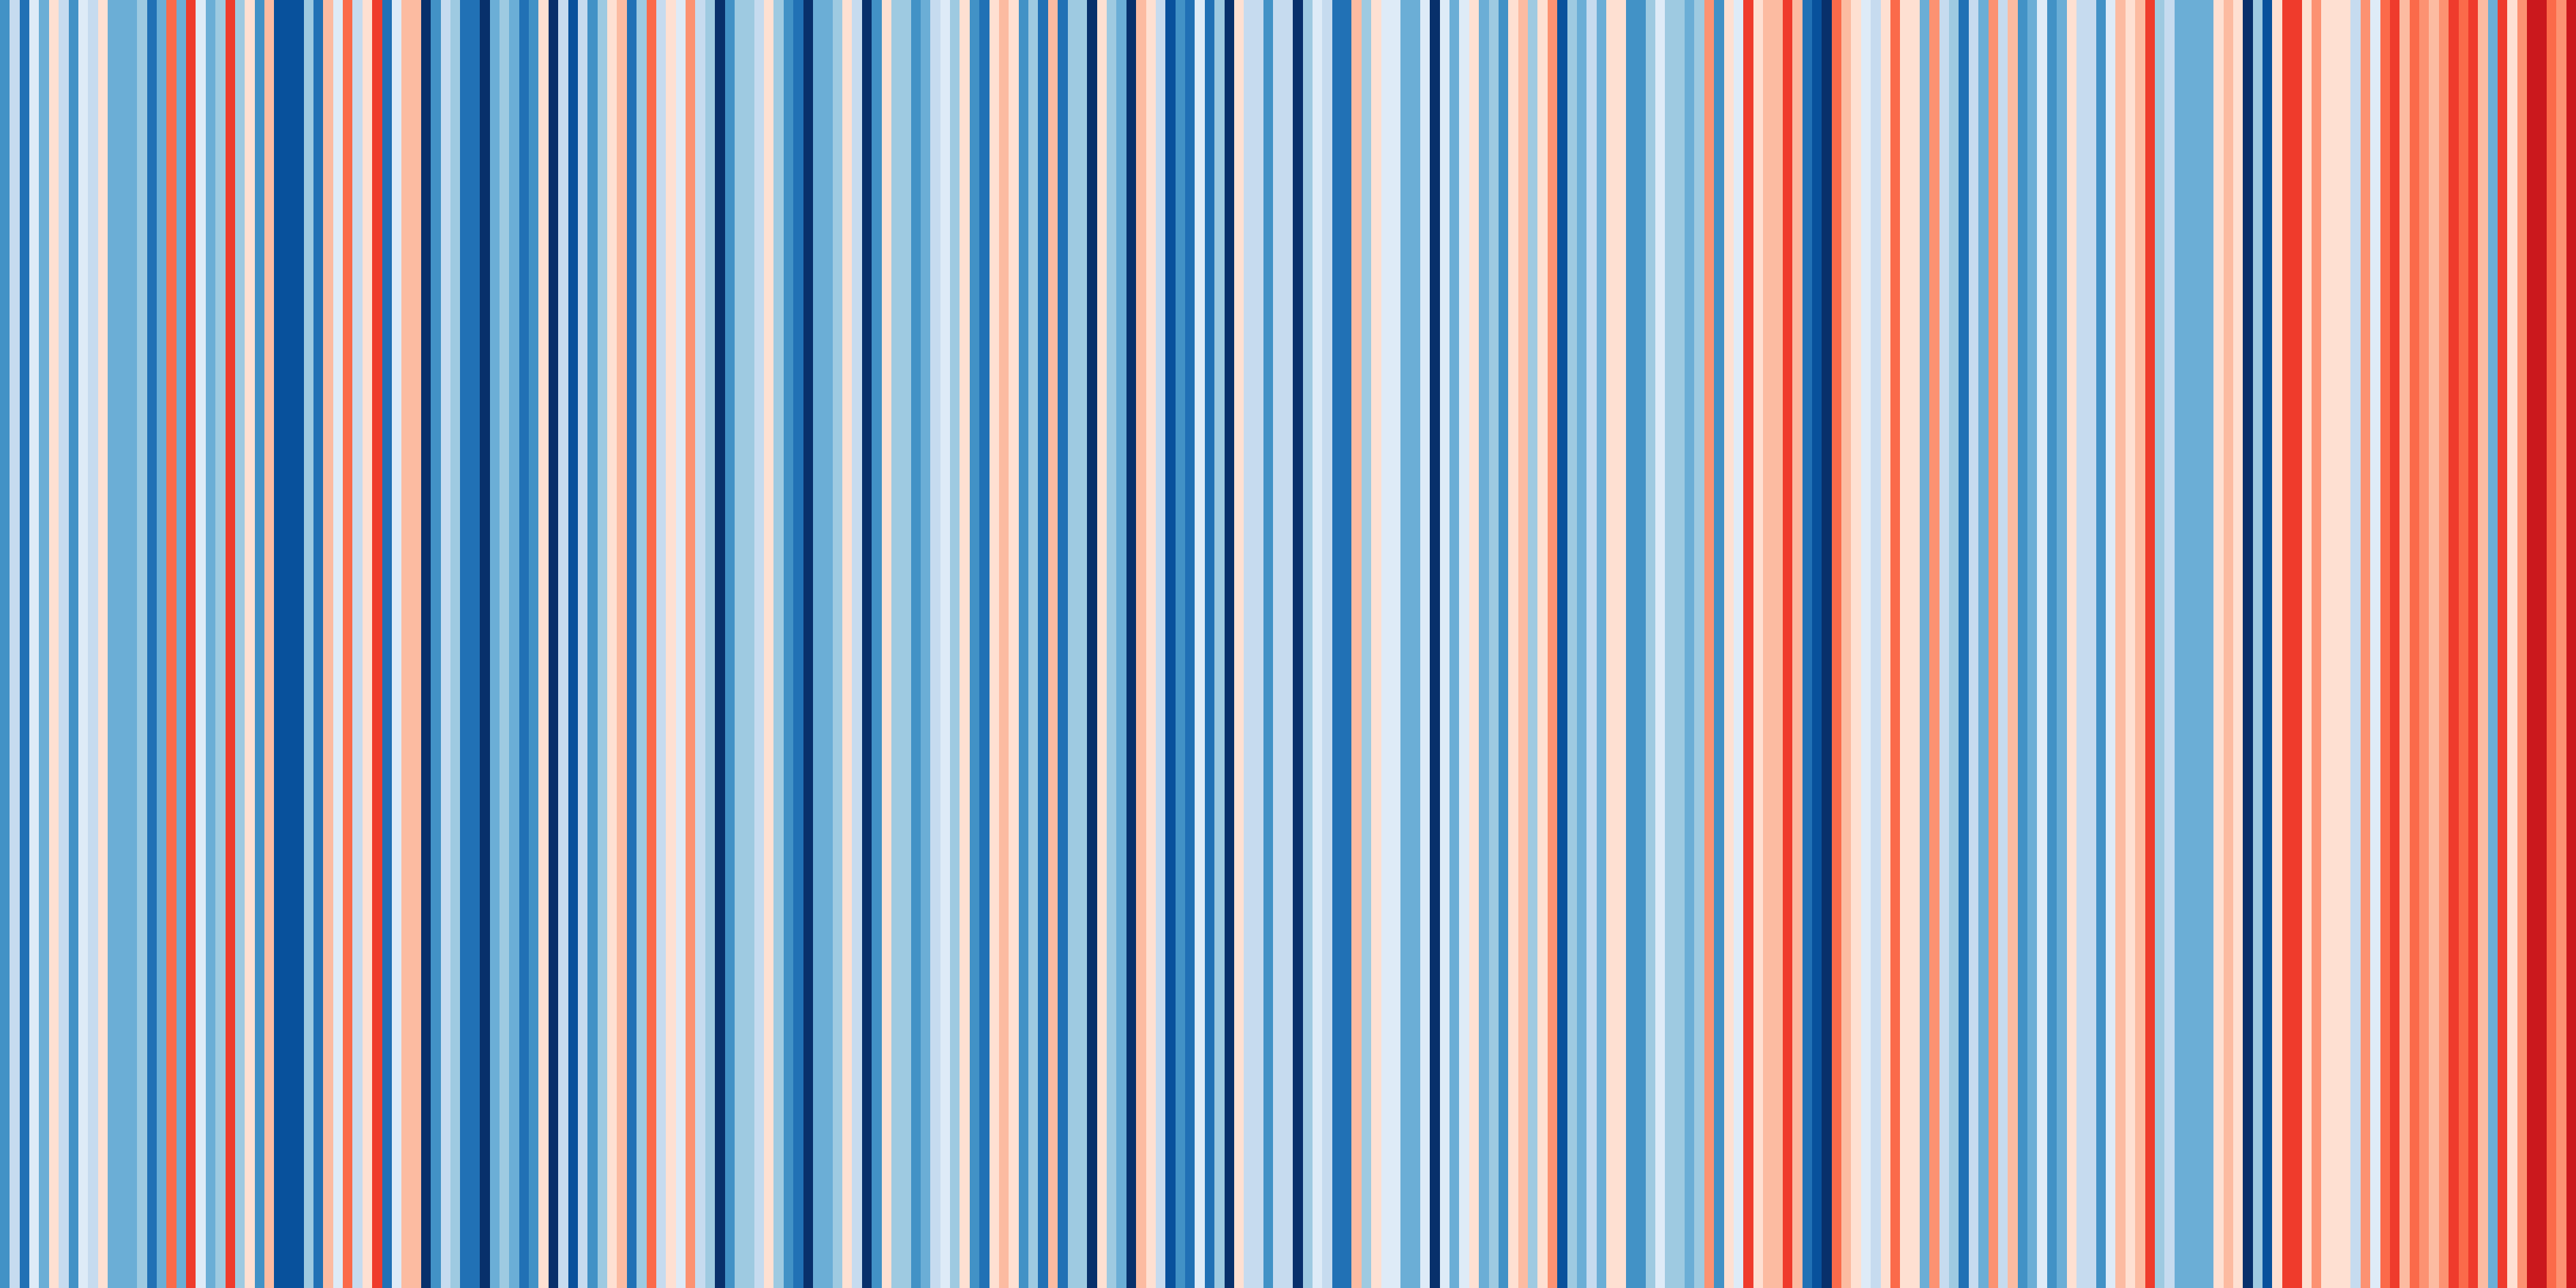 Show your stripes temperaturändringar Stockholm 1756-2018